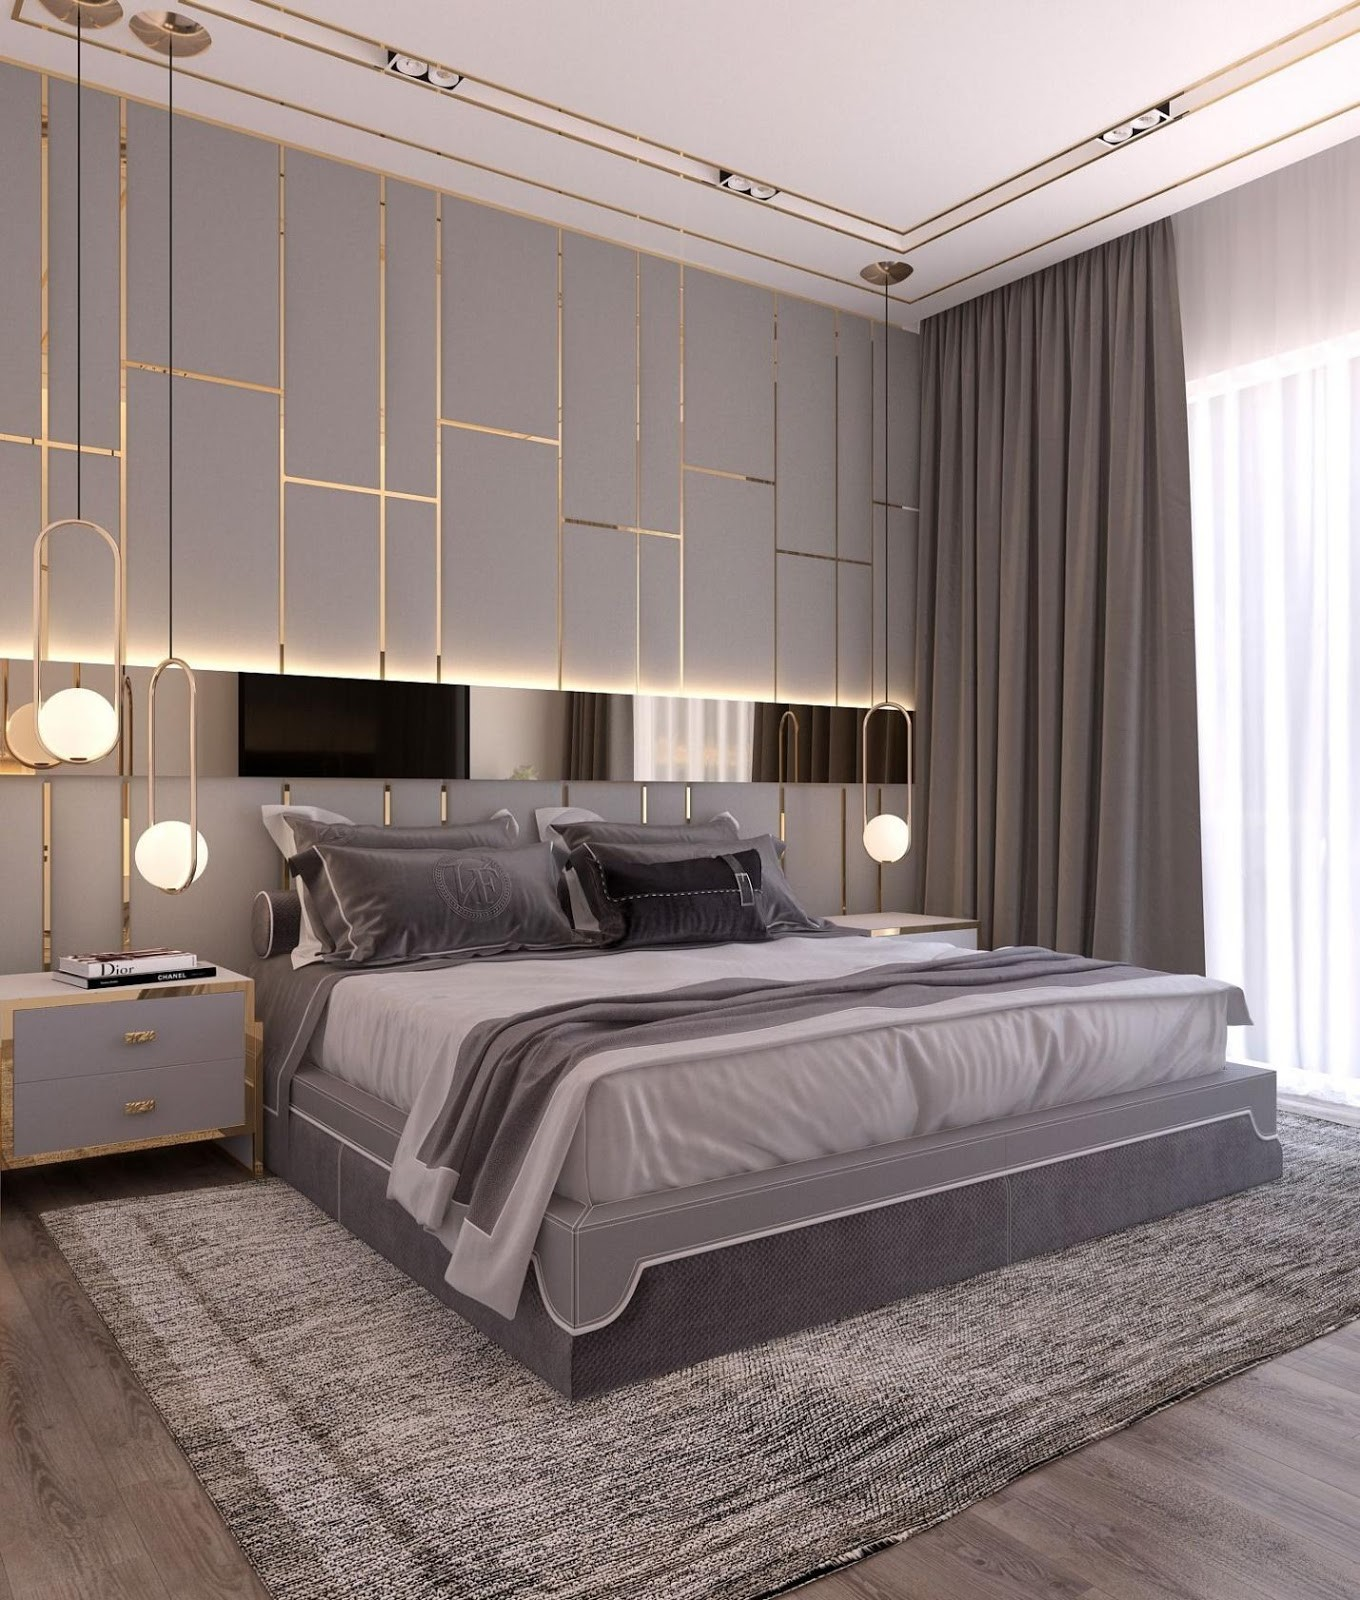 2.SIMPHOME.COM Grey Bedroom with Gold Lines